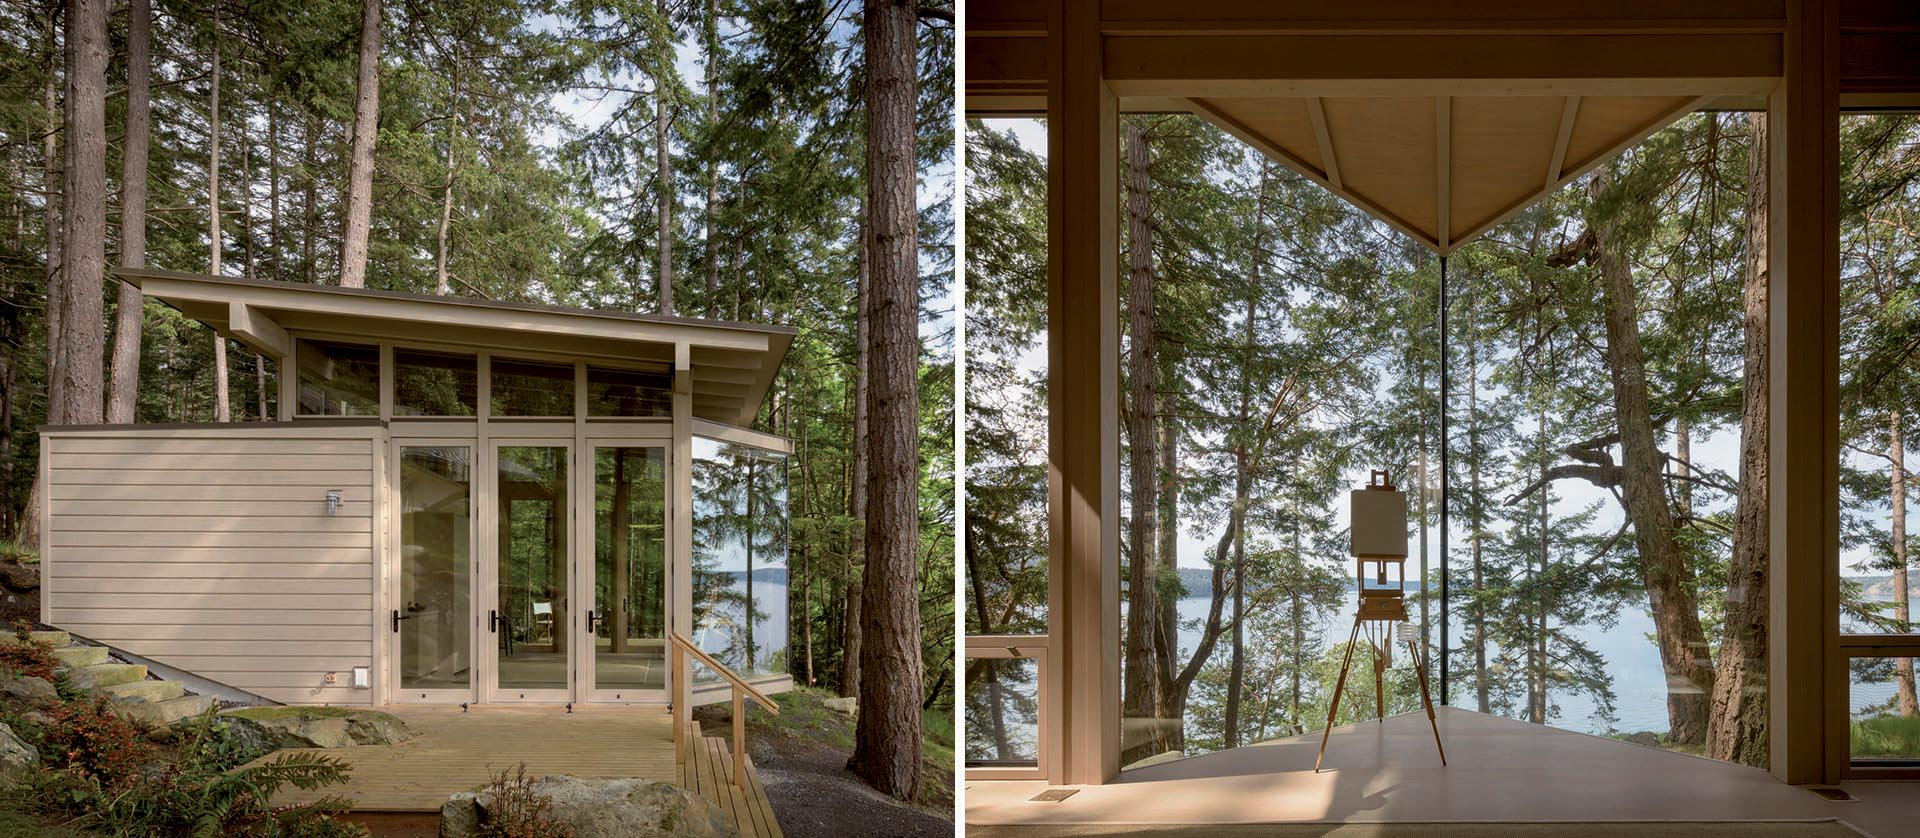 A small wood cabin that acts as a painting studio or guest house.